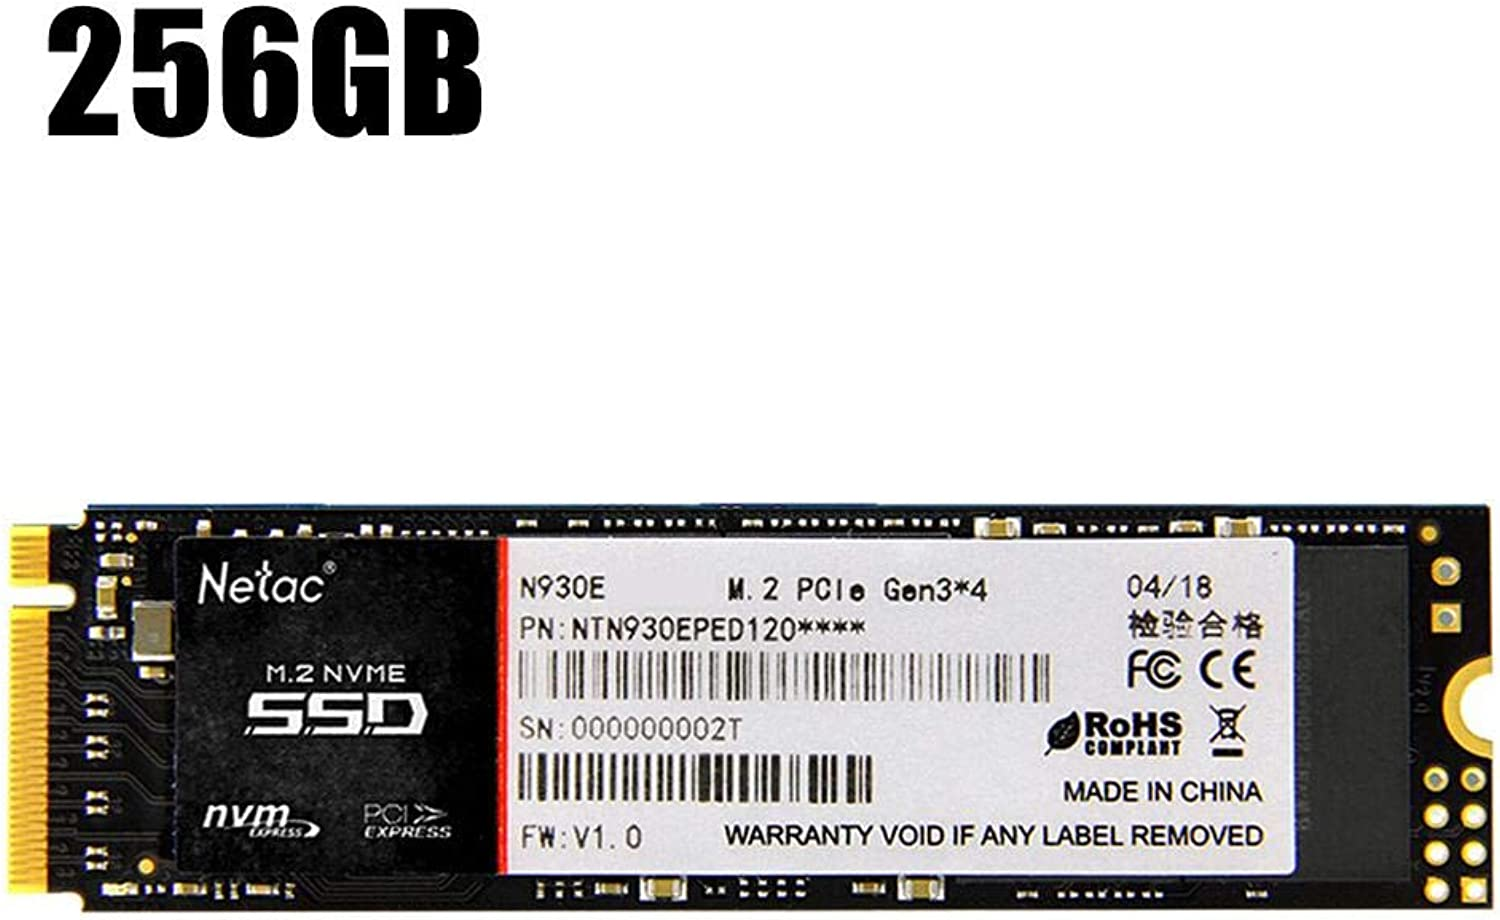 Headytidy Computer Hard Disk Drive PRO 128G 256G 512G M.2 NVMe Solid State Drive PCIe Gne3.0x4 2280MM SSD NVMe M.2 PCIe 3.0 x4 NVMe Solid State Drive